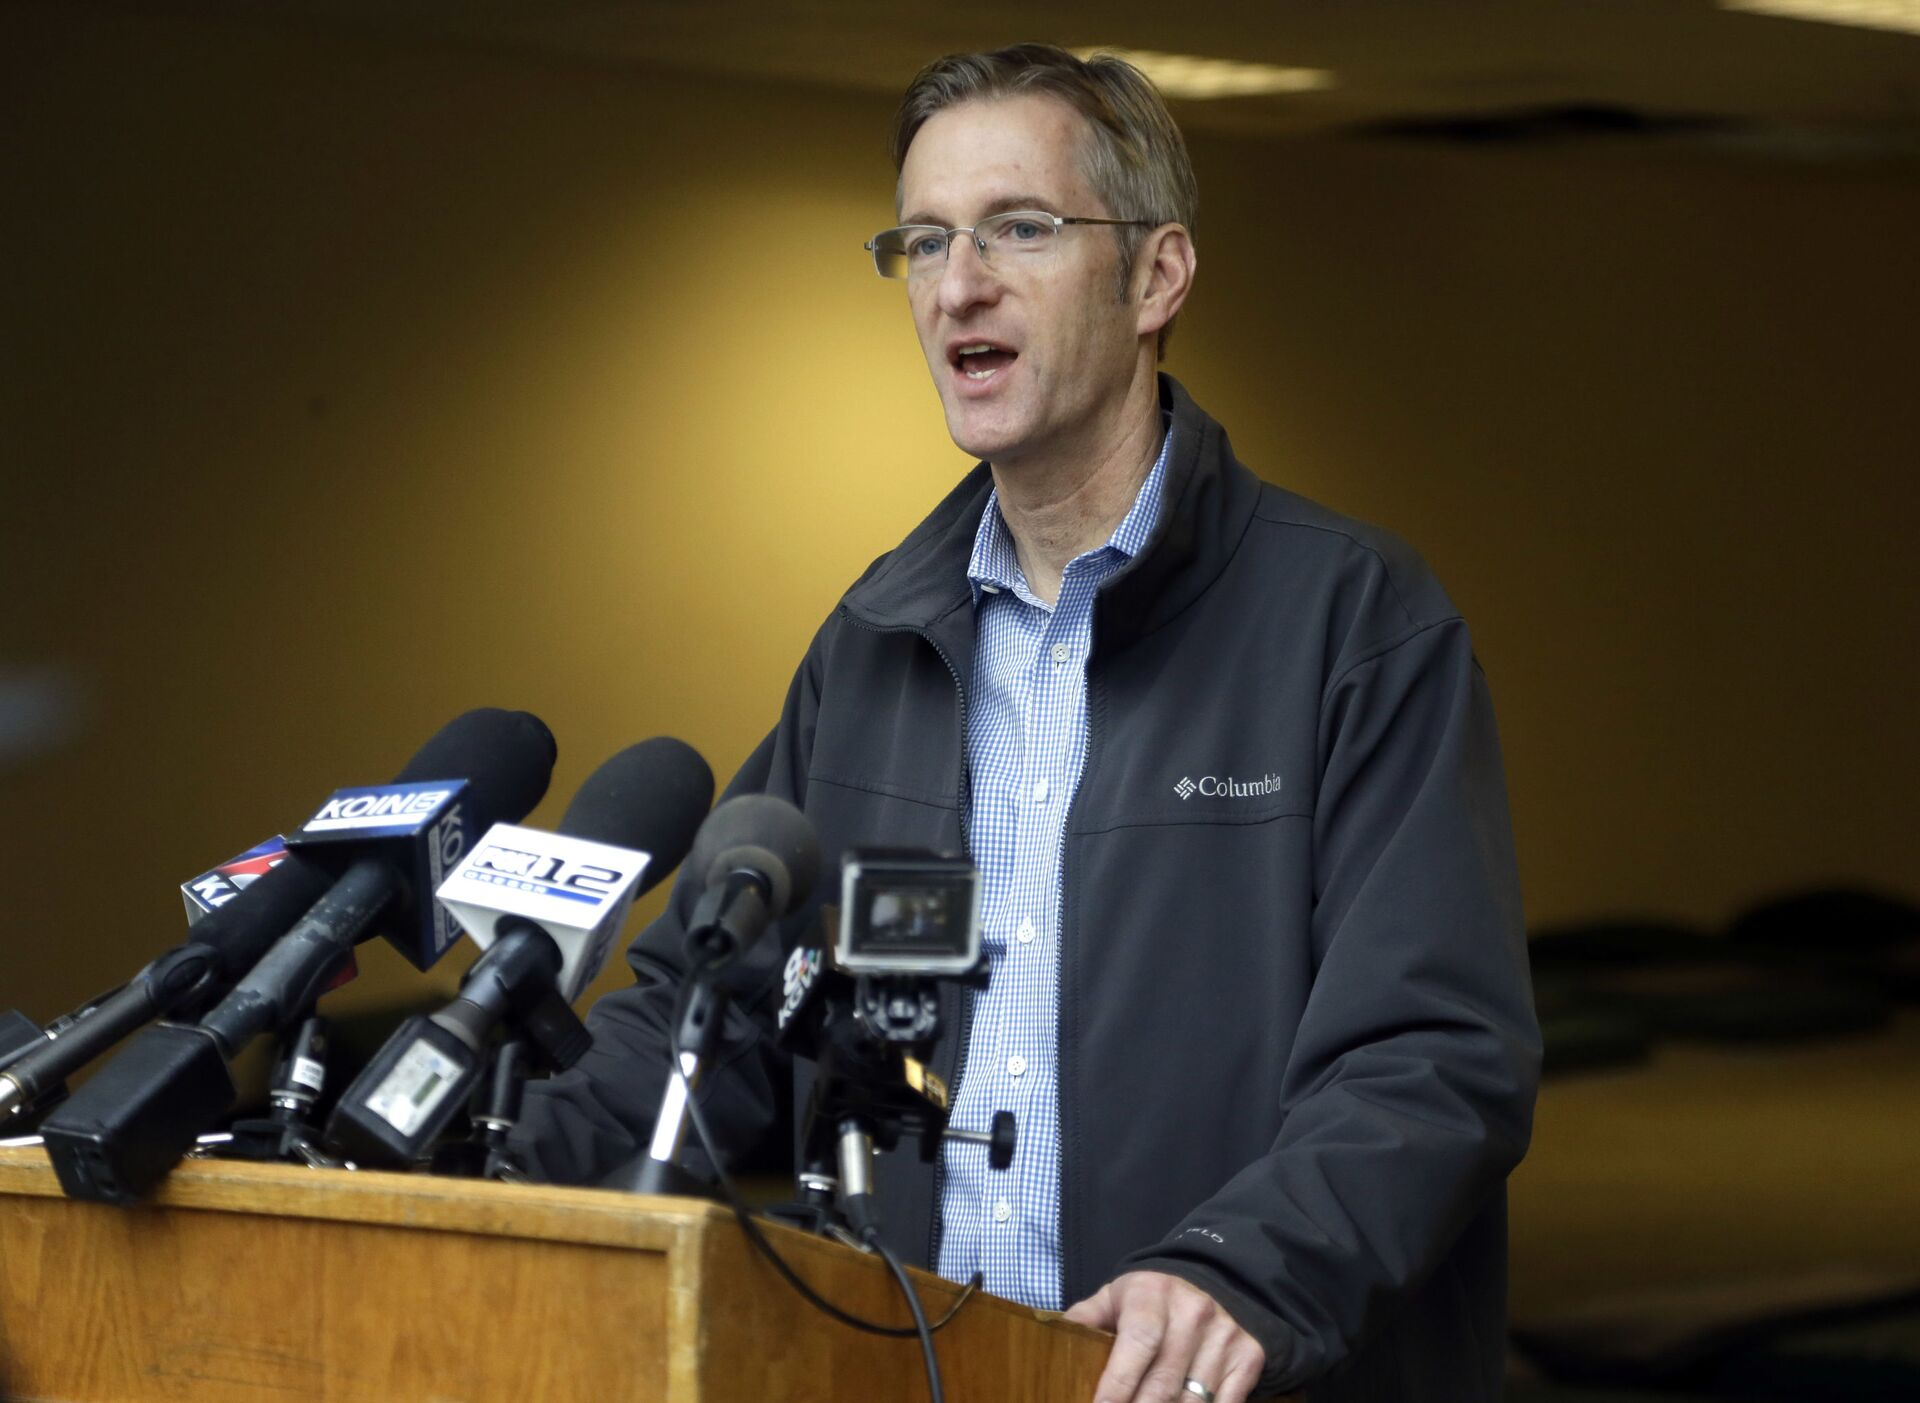 In this Jan. 17, 2017, file photo, Portland Mayor Ted Wheeler speaks during a press conference in Portland, Ore. A Portland man is suing the city and Wheeler, claiming the mayor's office has improperly kept secret records about a homeless shelter project.  - Sputnik International, 1920, 07.09.2021